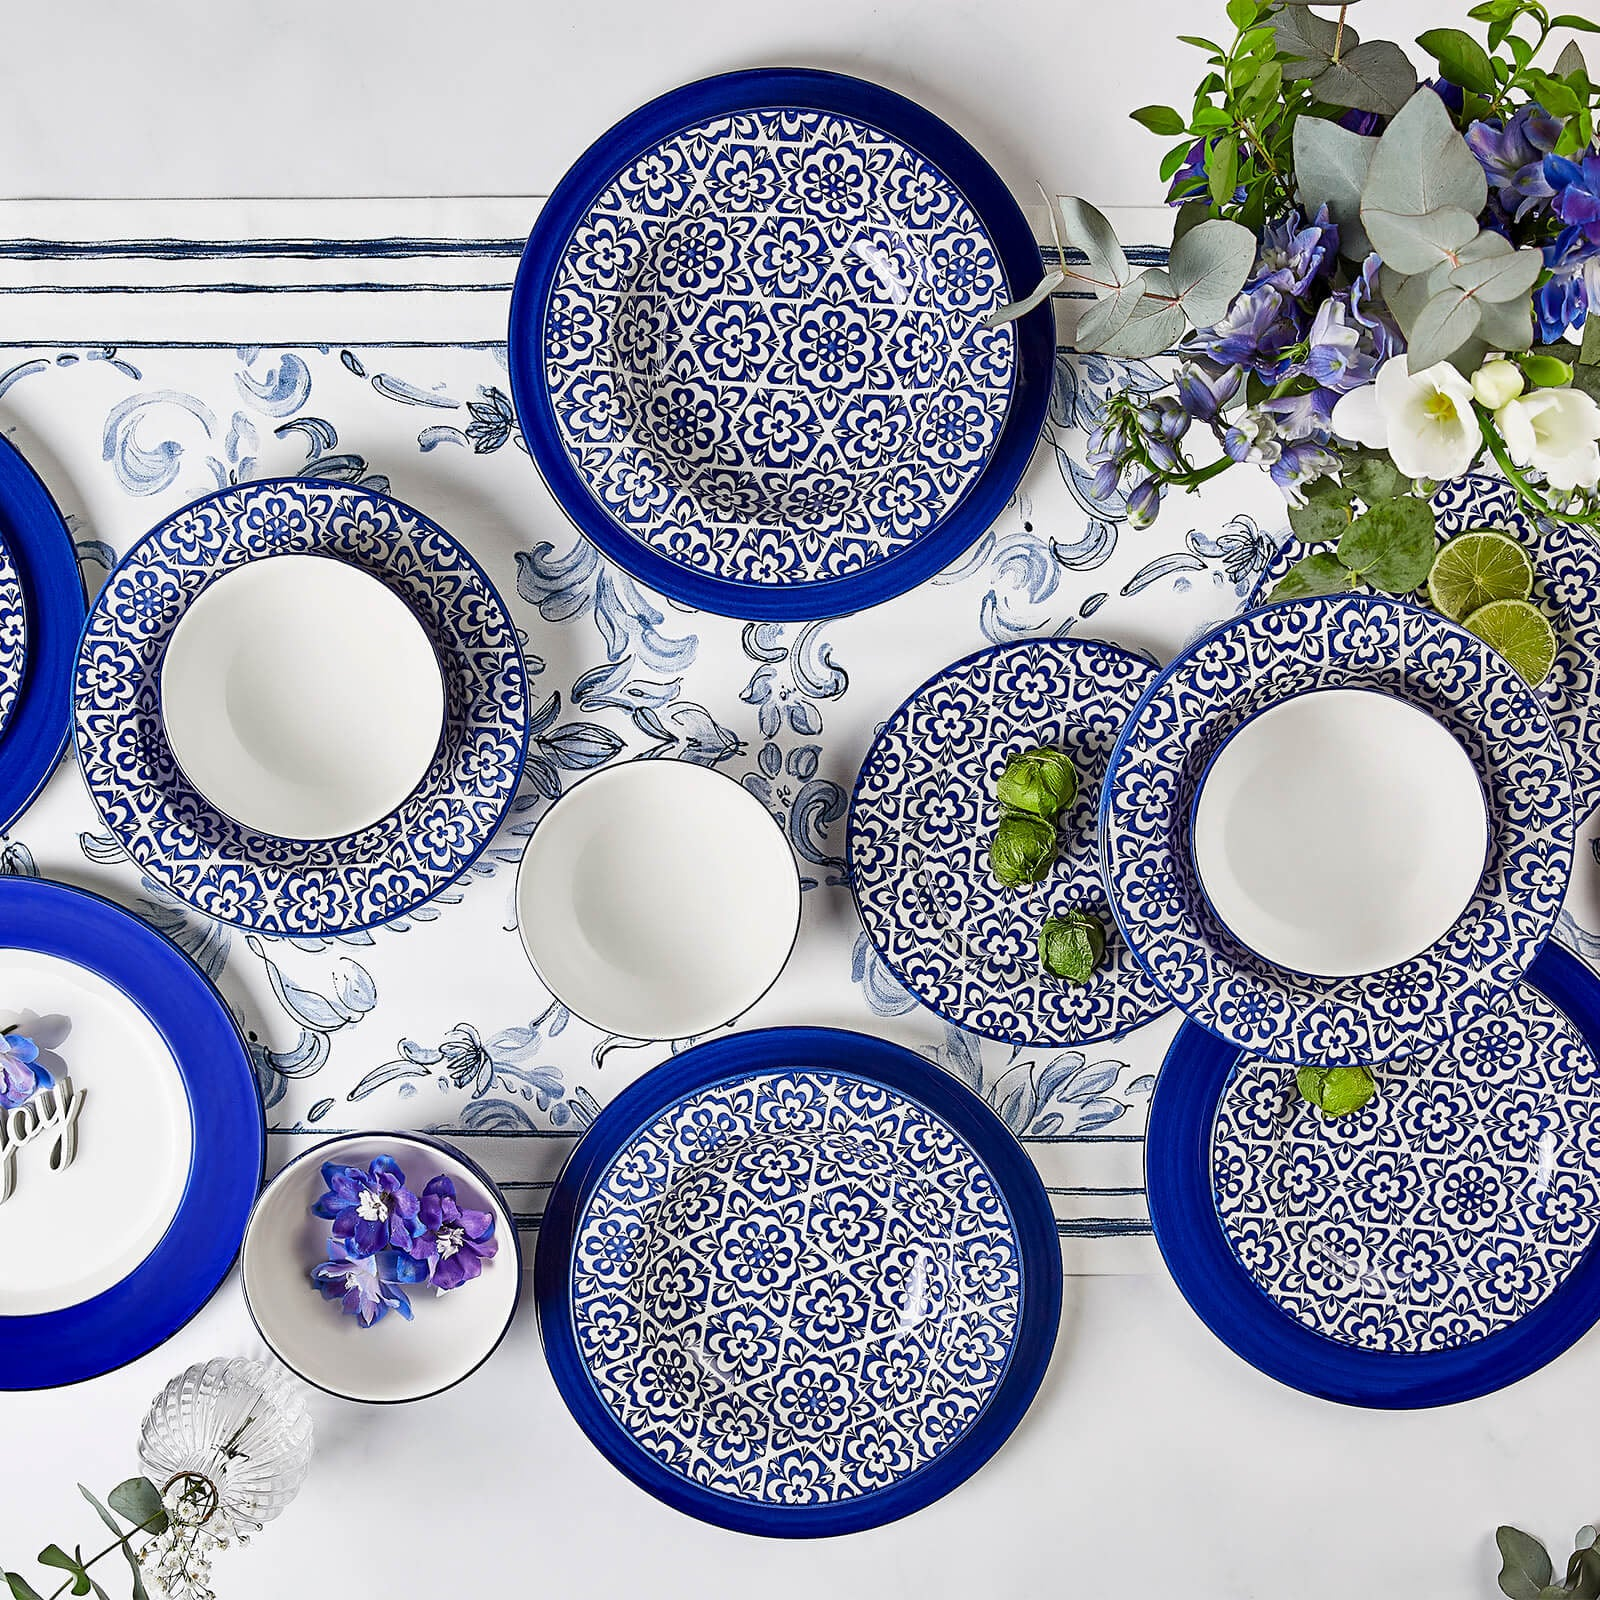 Pre-Order 50 days delivery Karaca Ege 24 Pieces 6 Person Dinner Set 153.03.07.5522